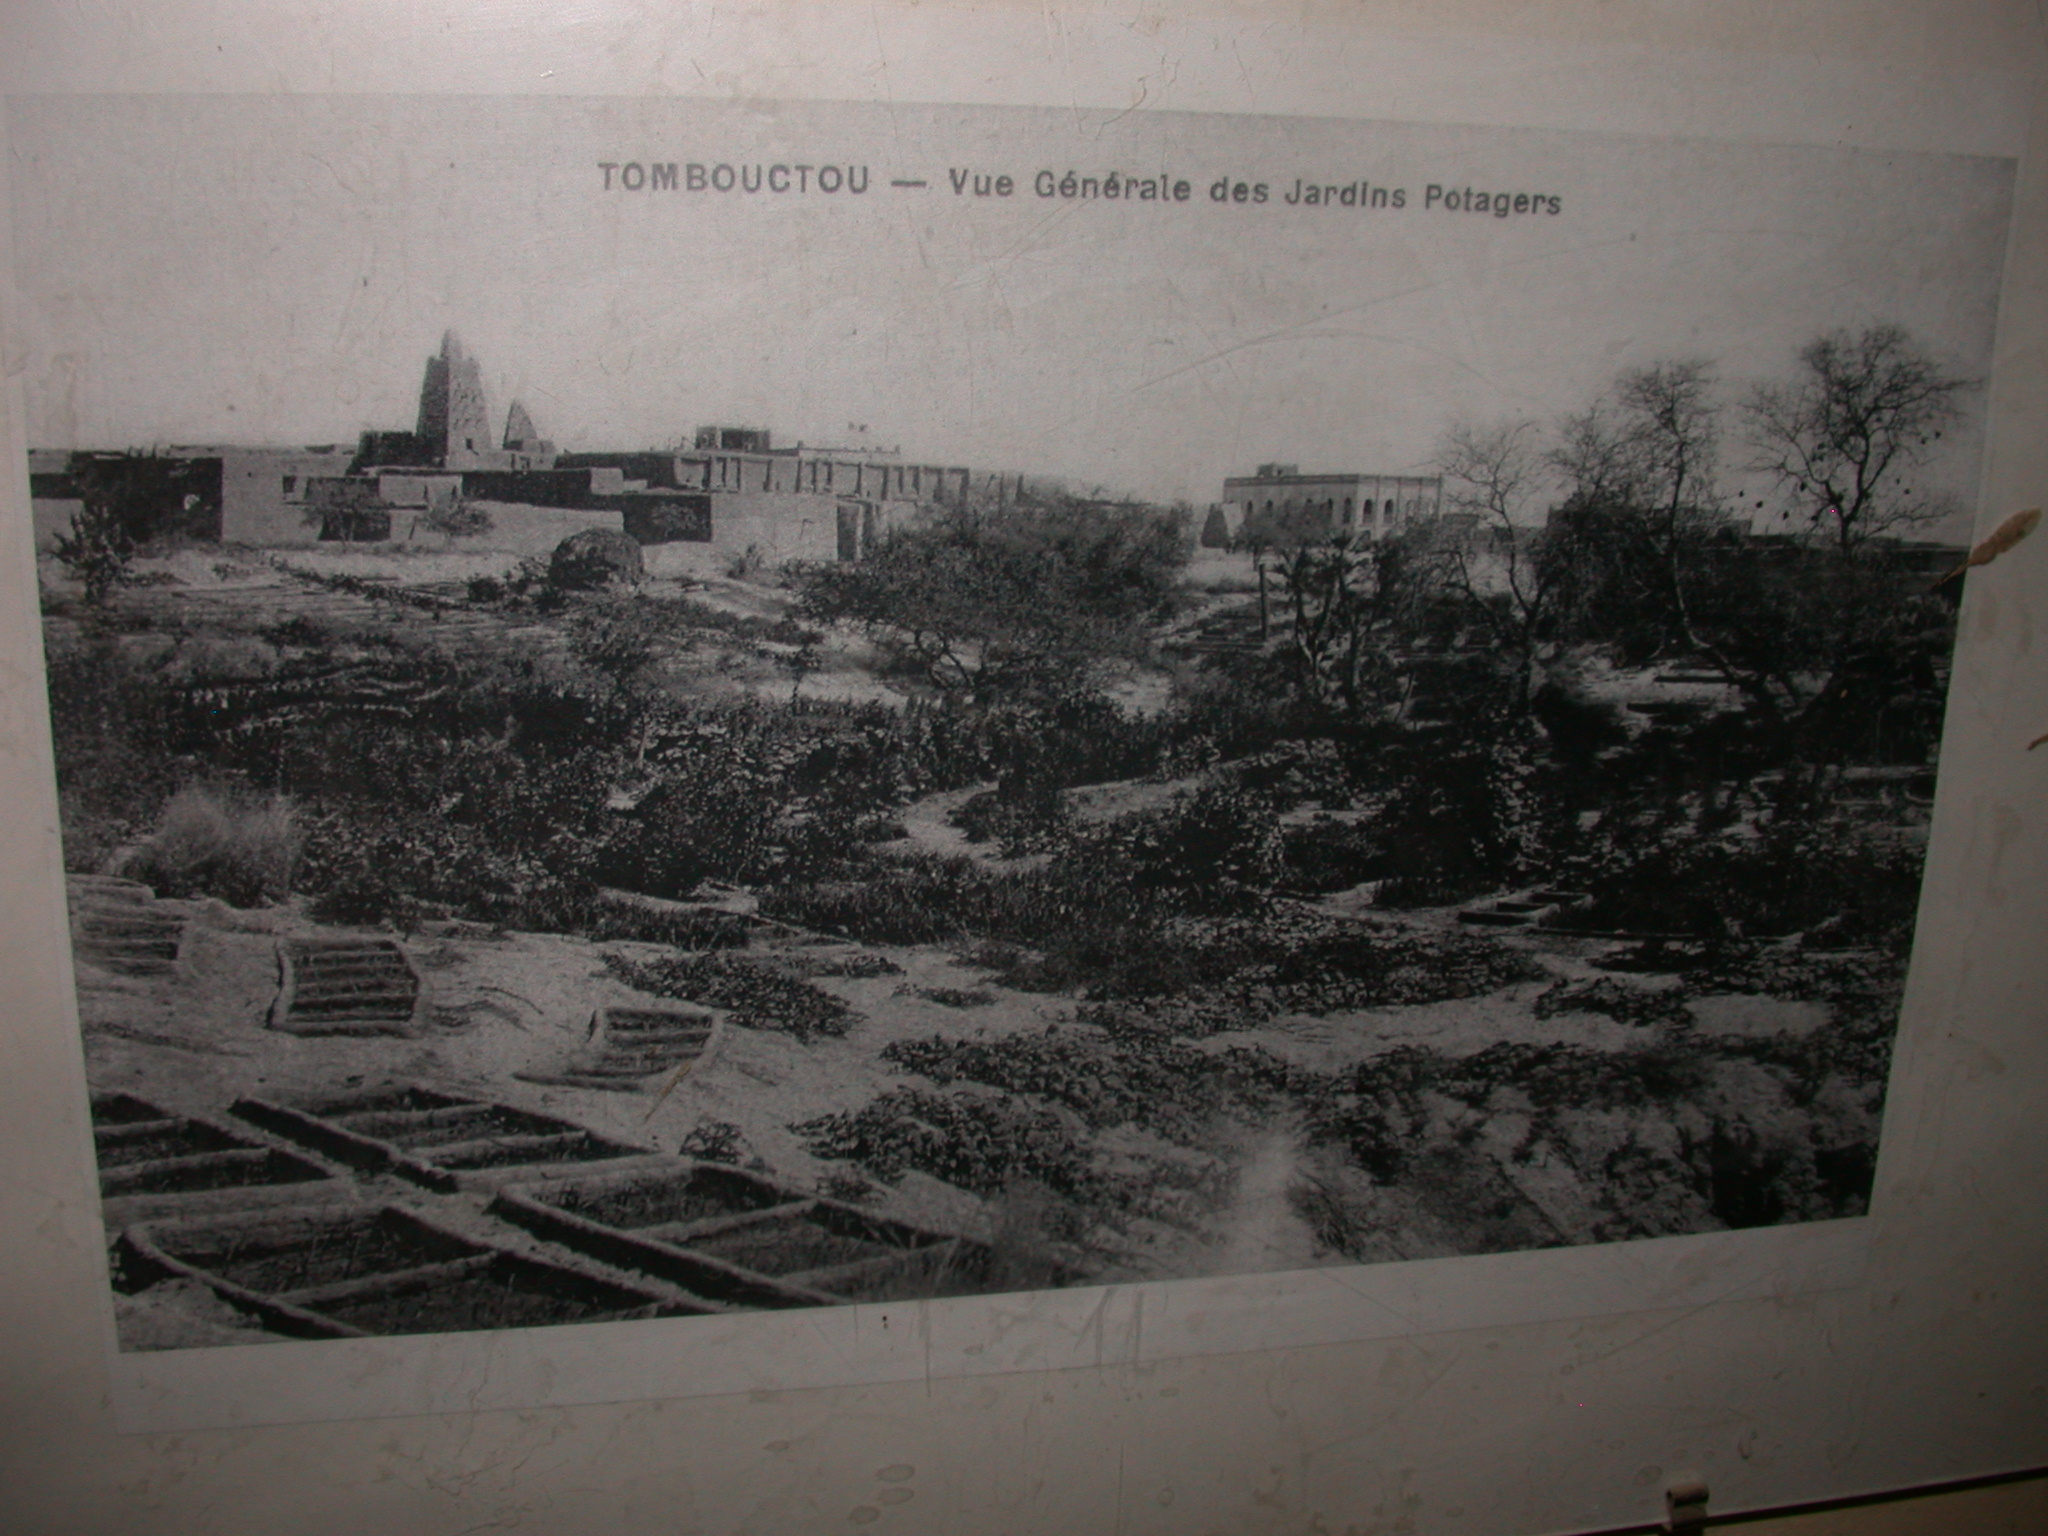 Old Photo of Timbuktu Vegetable Gardens, Timbuktu Ethnological Museum, Timbuktu, Mali